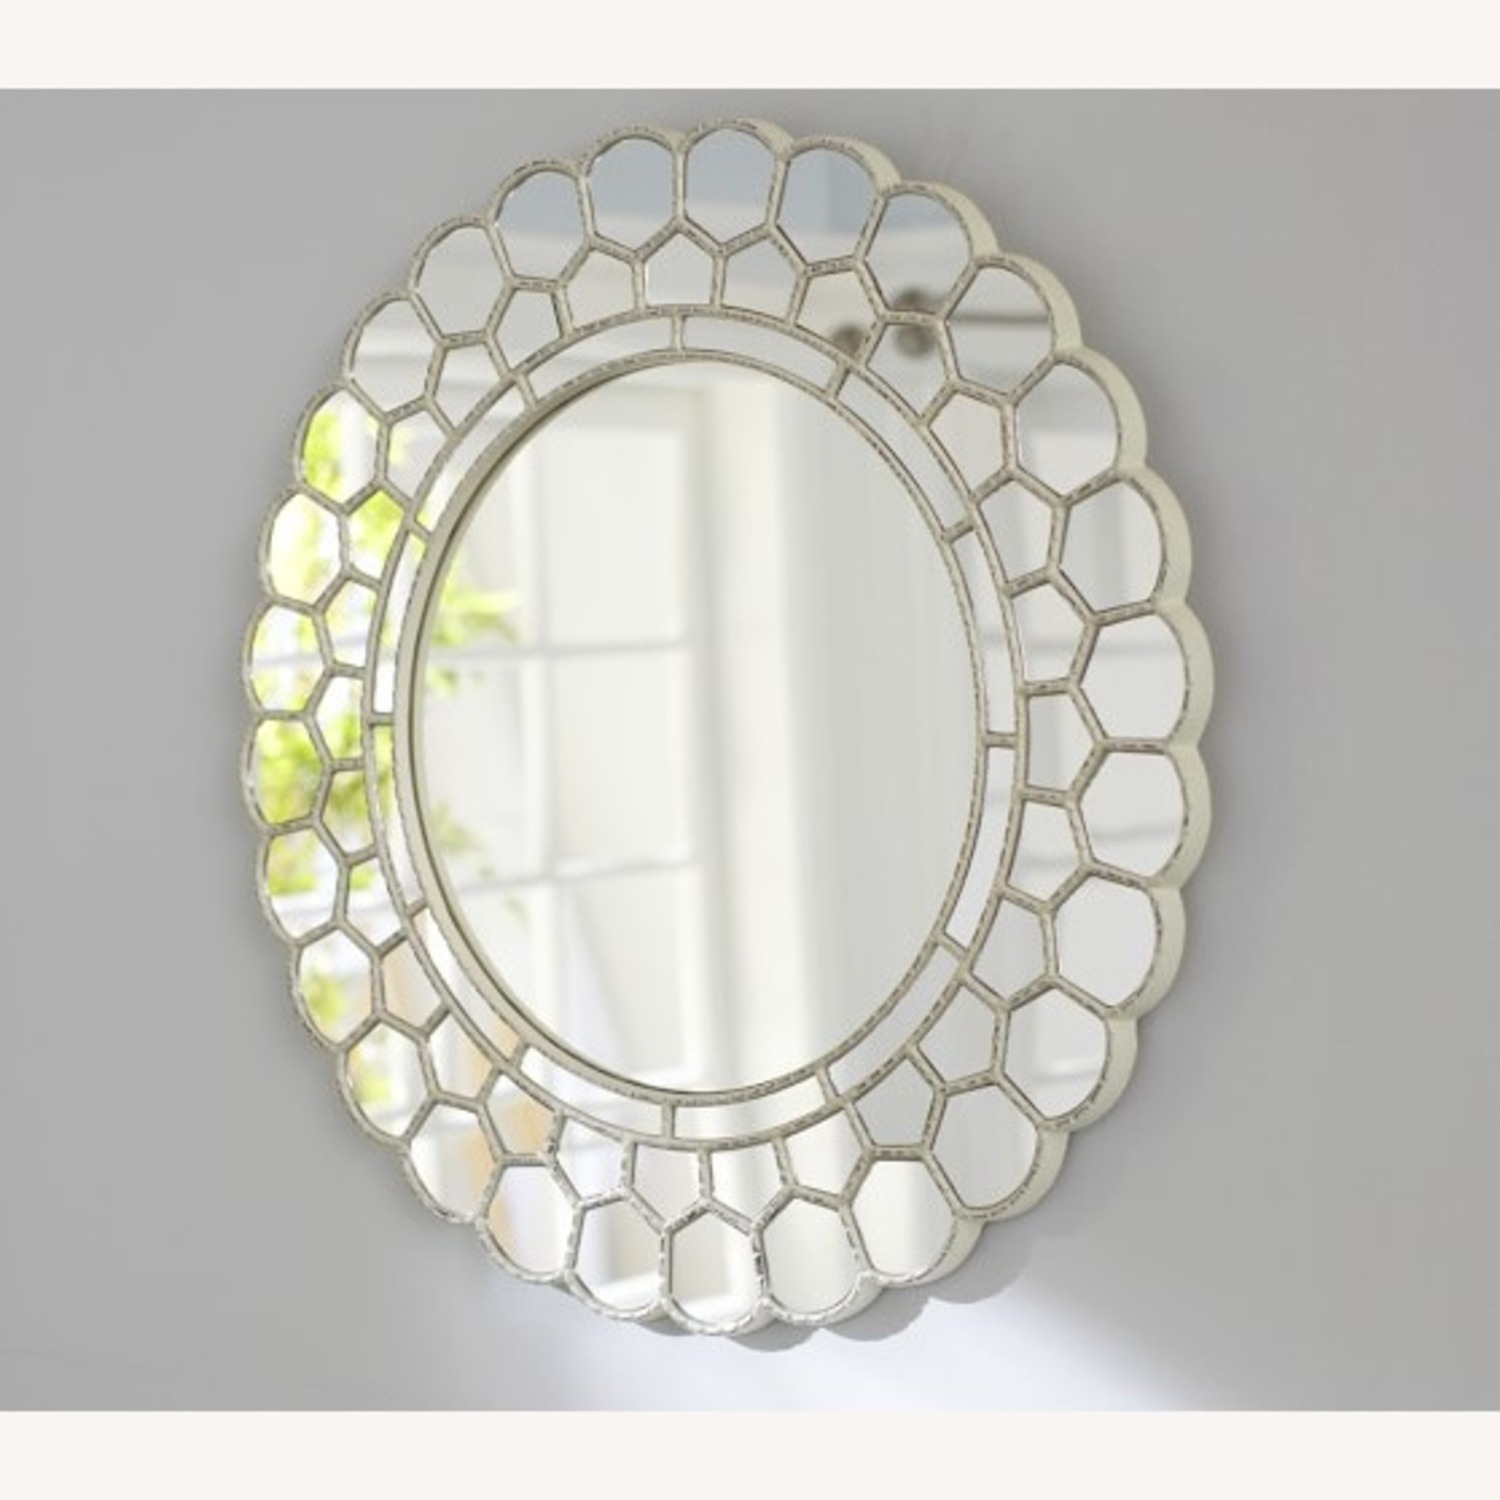 Pottery Barn Kids Blossom Mirror - image-1